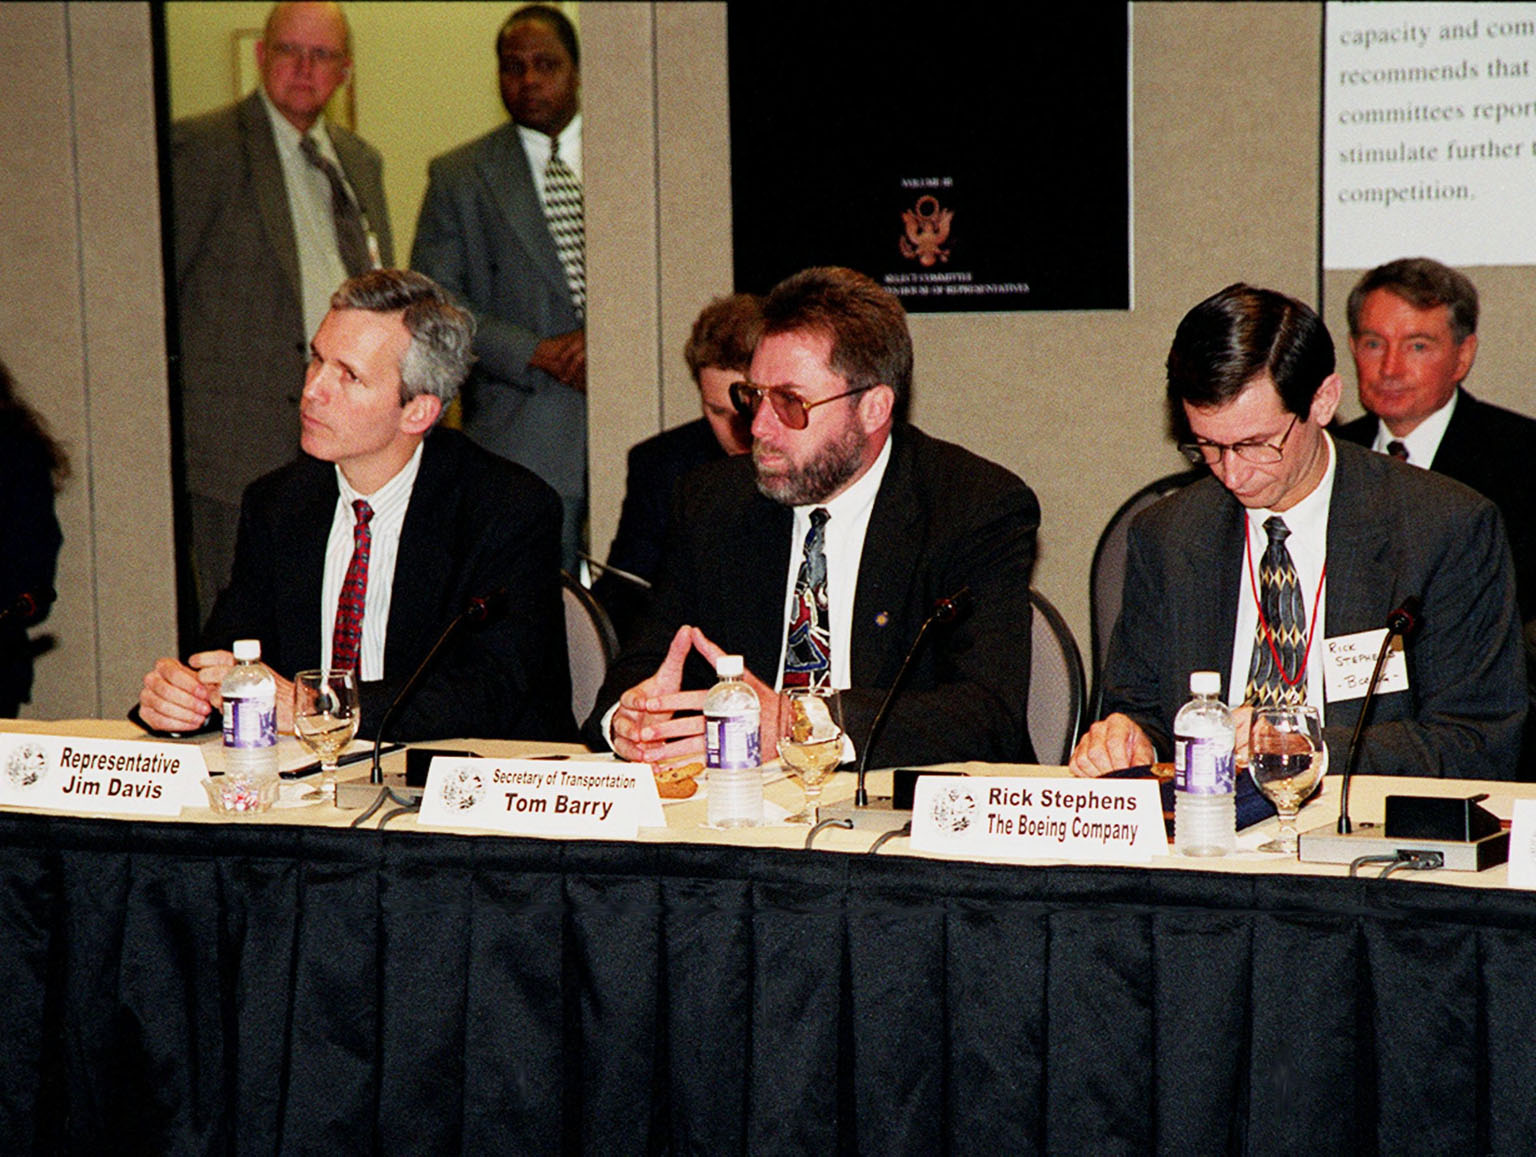 Participants in the First Florida Space Summit take part in a discussion on the future of space as it relates to the State of Florida. The discussion, held at the Kennedy Space Center Visitor Complex, was moderated by Center Director Roy Bridges. Seated (left to right) are Representative Jim Davis, Secretary of Transportation Tom Barry and Rick Stephens, who represented The Boeing Company. The event also included Senator Bob Graham, Senator Connie Mack, Representative Dave Weldon, 45th Space Wing Commander Brig. Gen. Donald Pettit and heads of aerospace companies